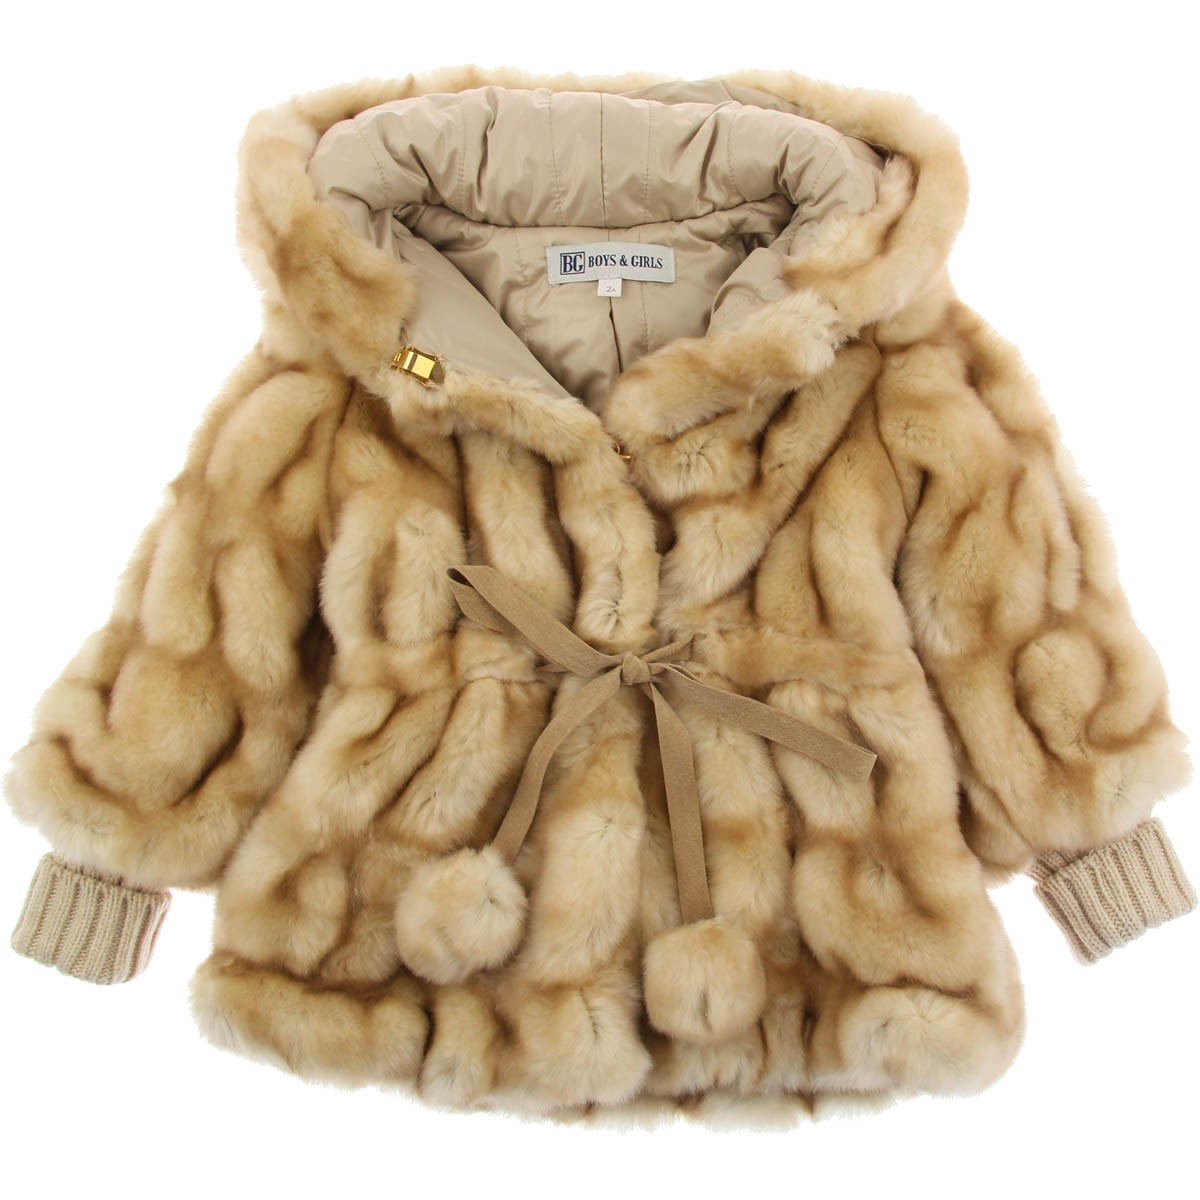 New Baby and Girls Fleece Coat with Fur Trim. This beautiful soft and cozy fleece coat is A-line swing style. Coat has fleece covered buttons. and features a faux fur collar and cuffs.